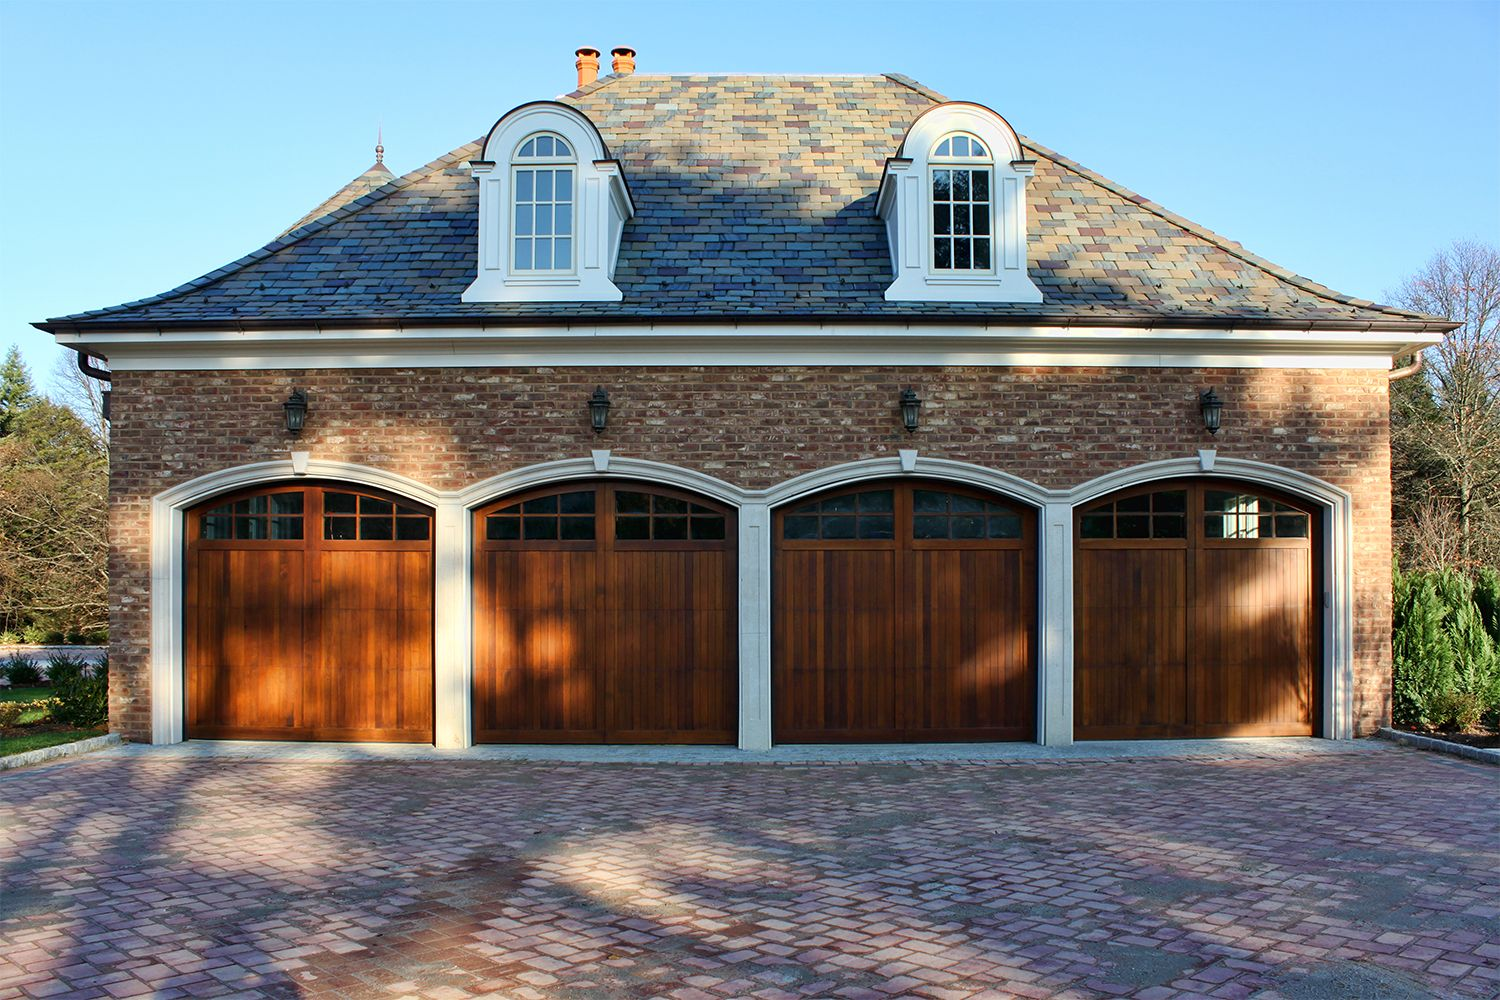 Garage doors and windows fitted with concrete surrounds trim garage doors and windows fitted with concrete surrounds trim and rubansaba